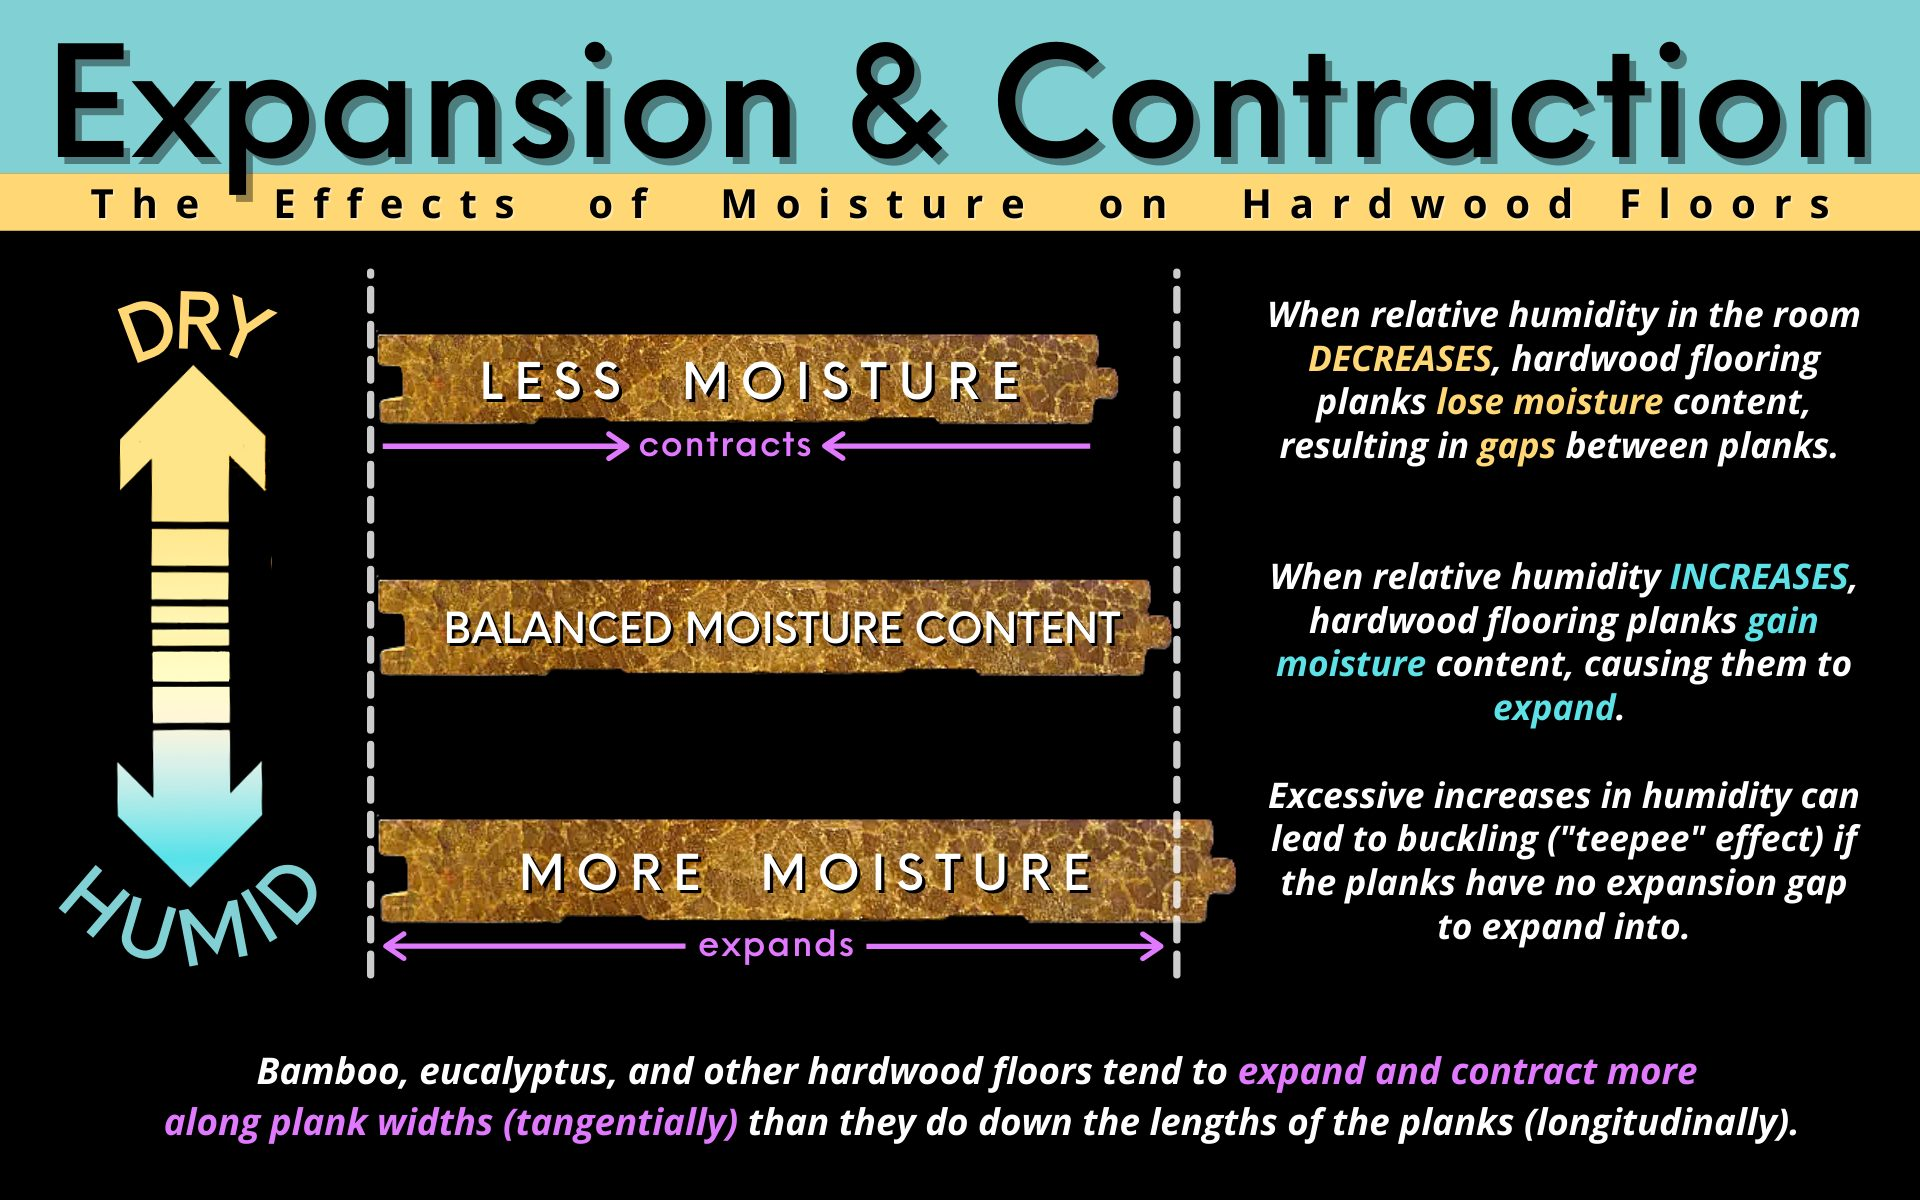 Expansion and Contraction Infographic